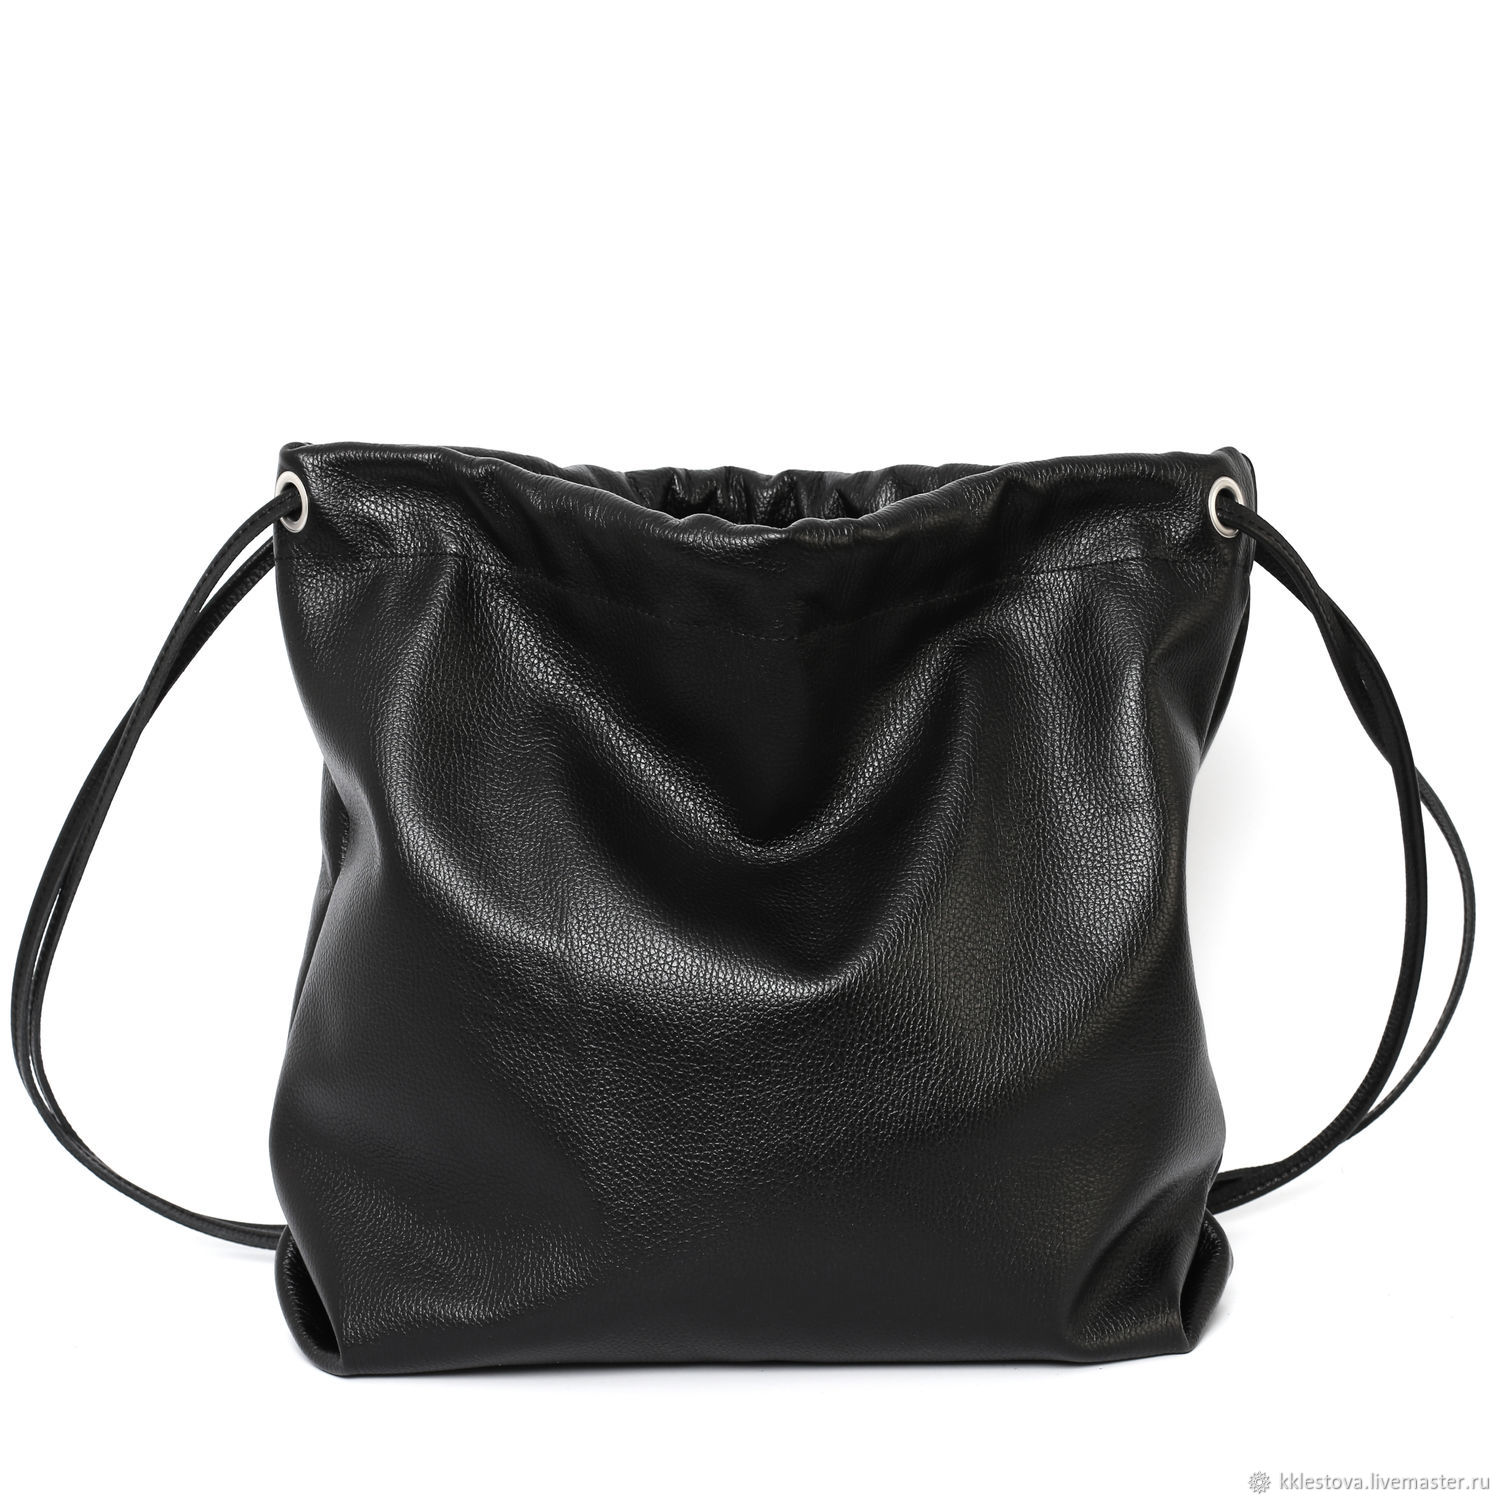 Backpack leather bag black medium size with pocket, Backpacks, Moscow,  Фото №1